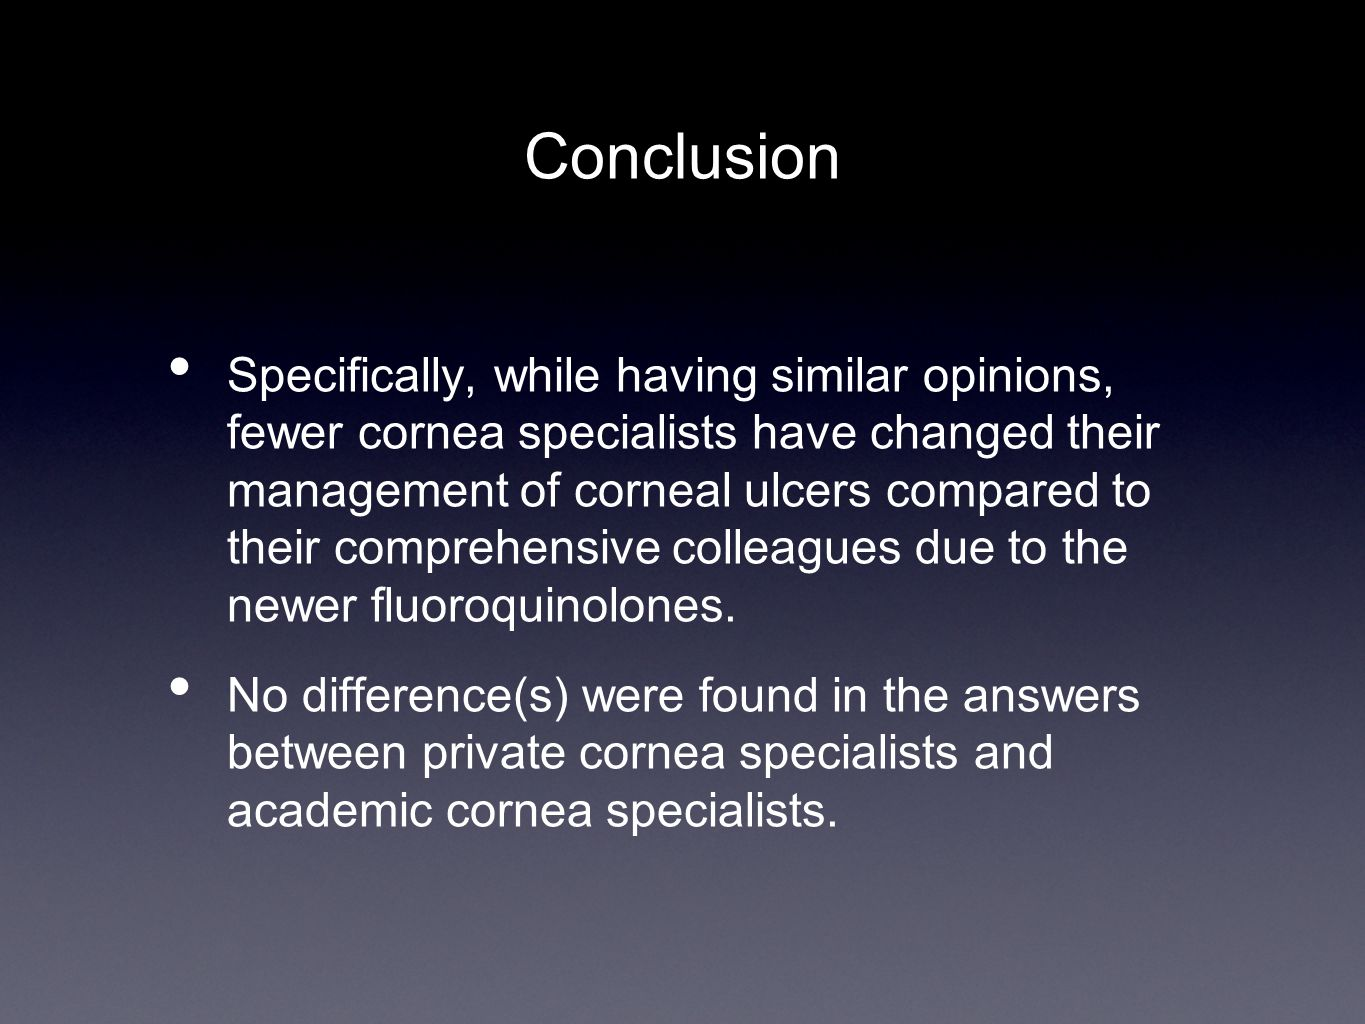 Conclusion Specifically, while having similar opinions, fewer cornea specialists have changed their management of corneal ulcers compared to their comprehensive colleagues due to the newer fluoroquinolones.